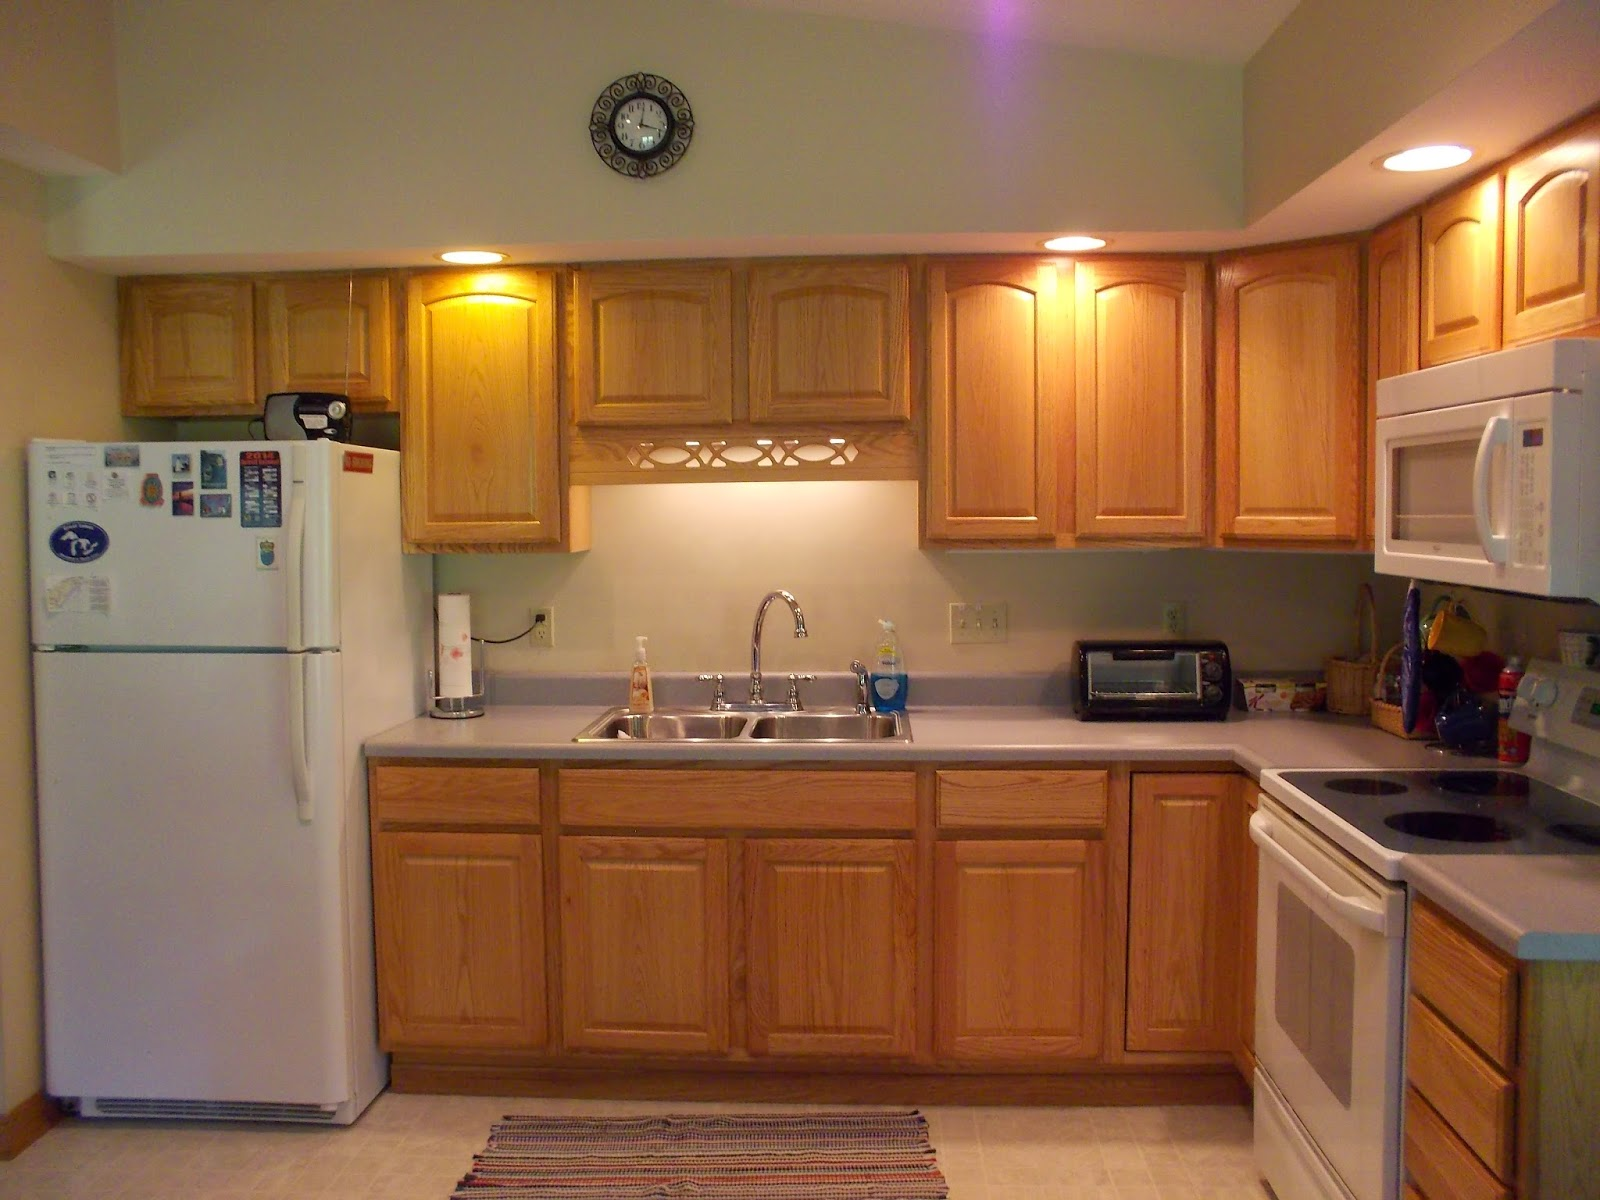 You can cook in the fully stocked kitchen at the Hutch, a bed and breakfast in Hillsdale, Michigan.